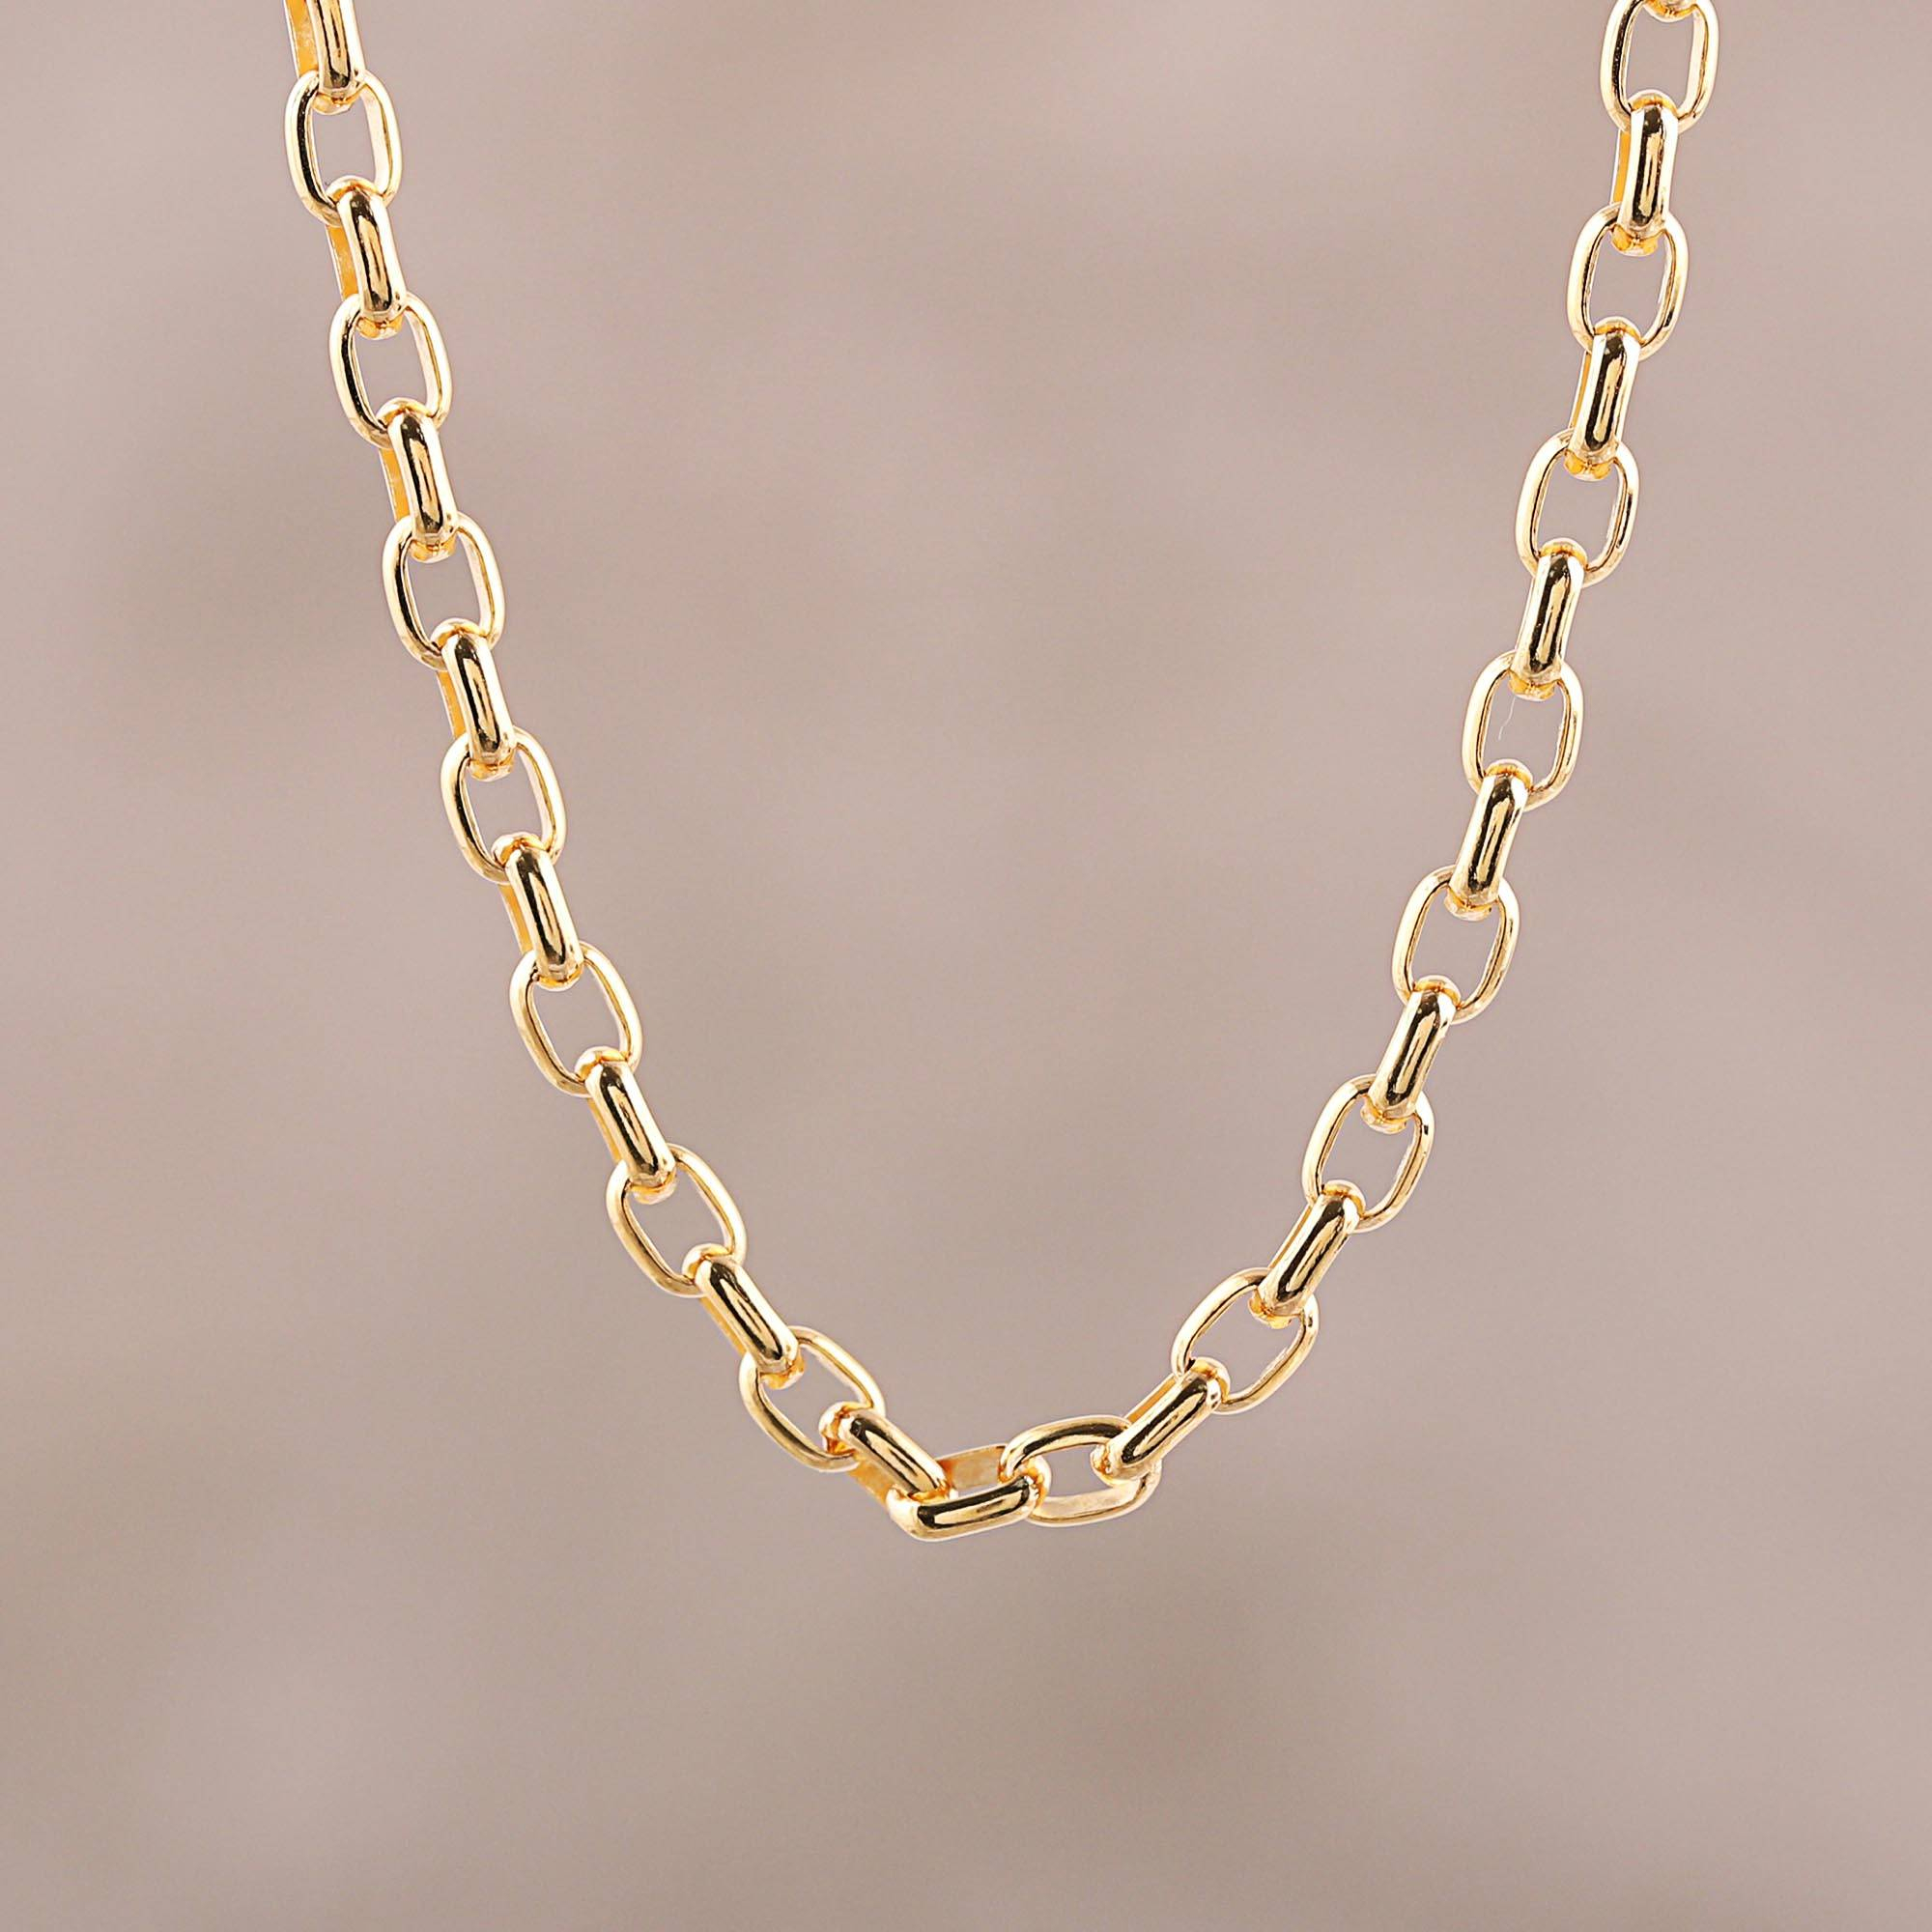 22K Gold Plated Sterling Silver Chain Necklace From India, 'classic Gold' Intended For Most Current Classic Cable Chain Necklaces (Gallery 8 of 25)